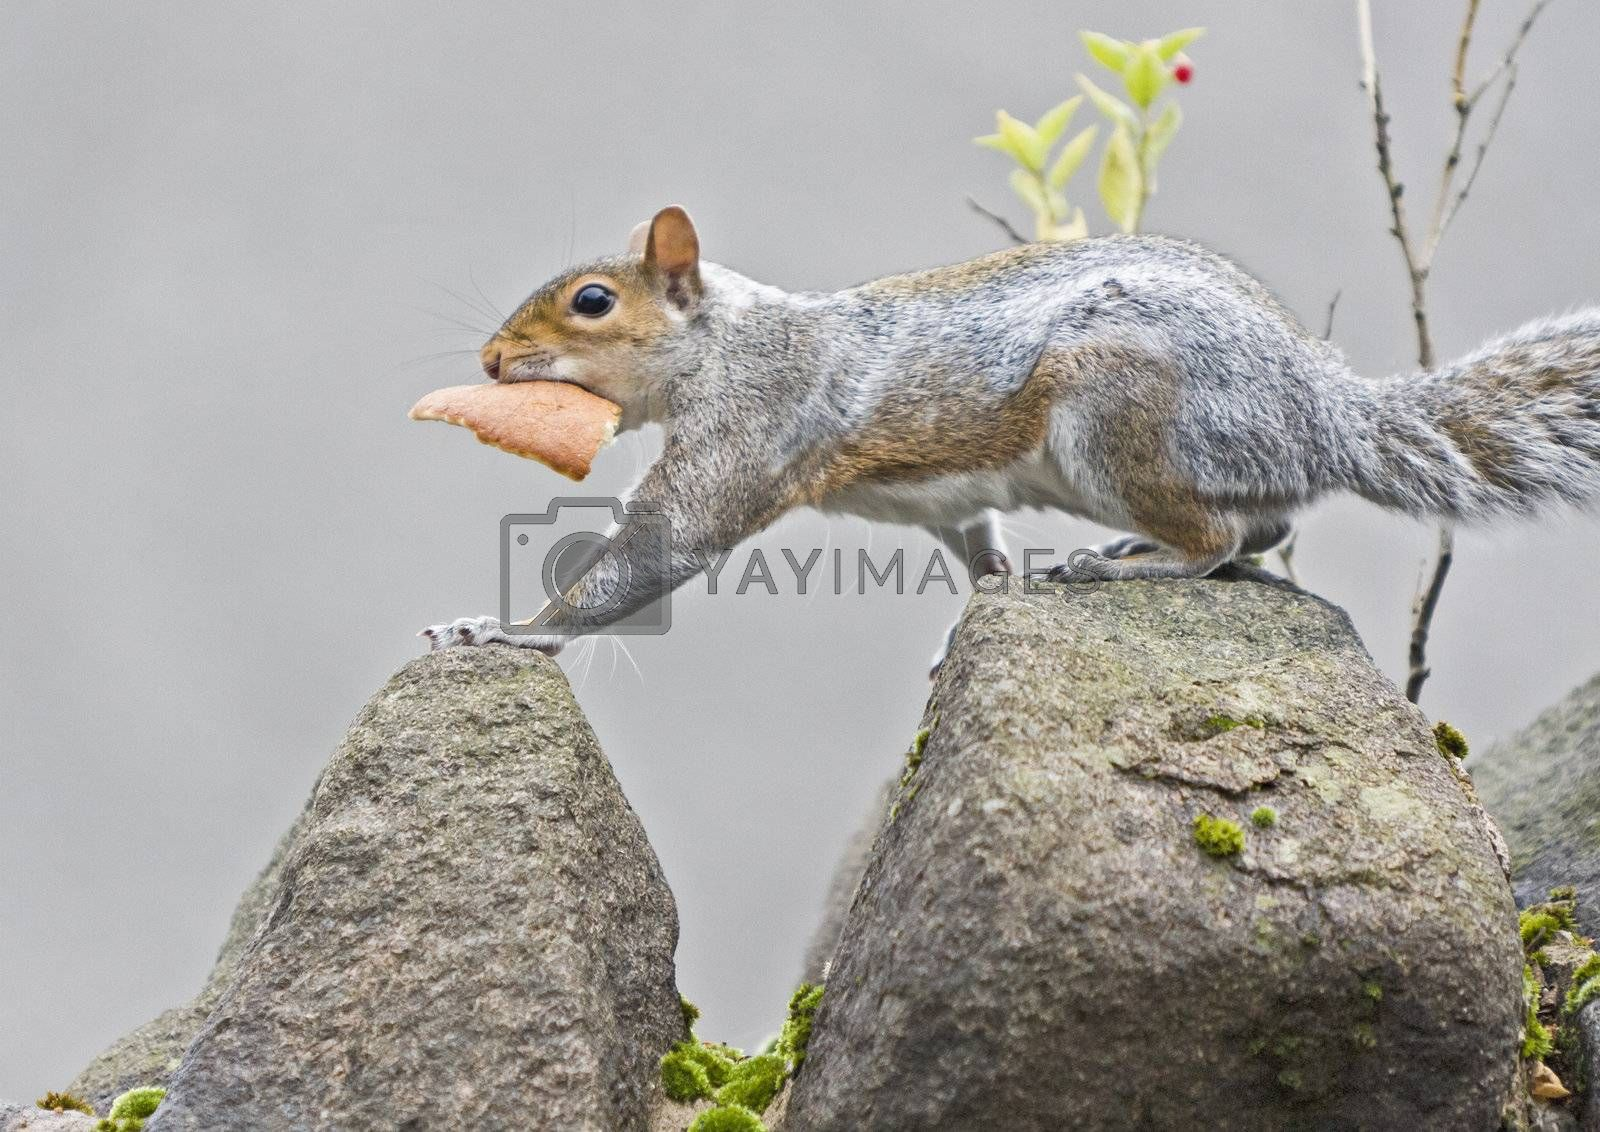 squirrel with a piece of bread on top of a wall